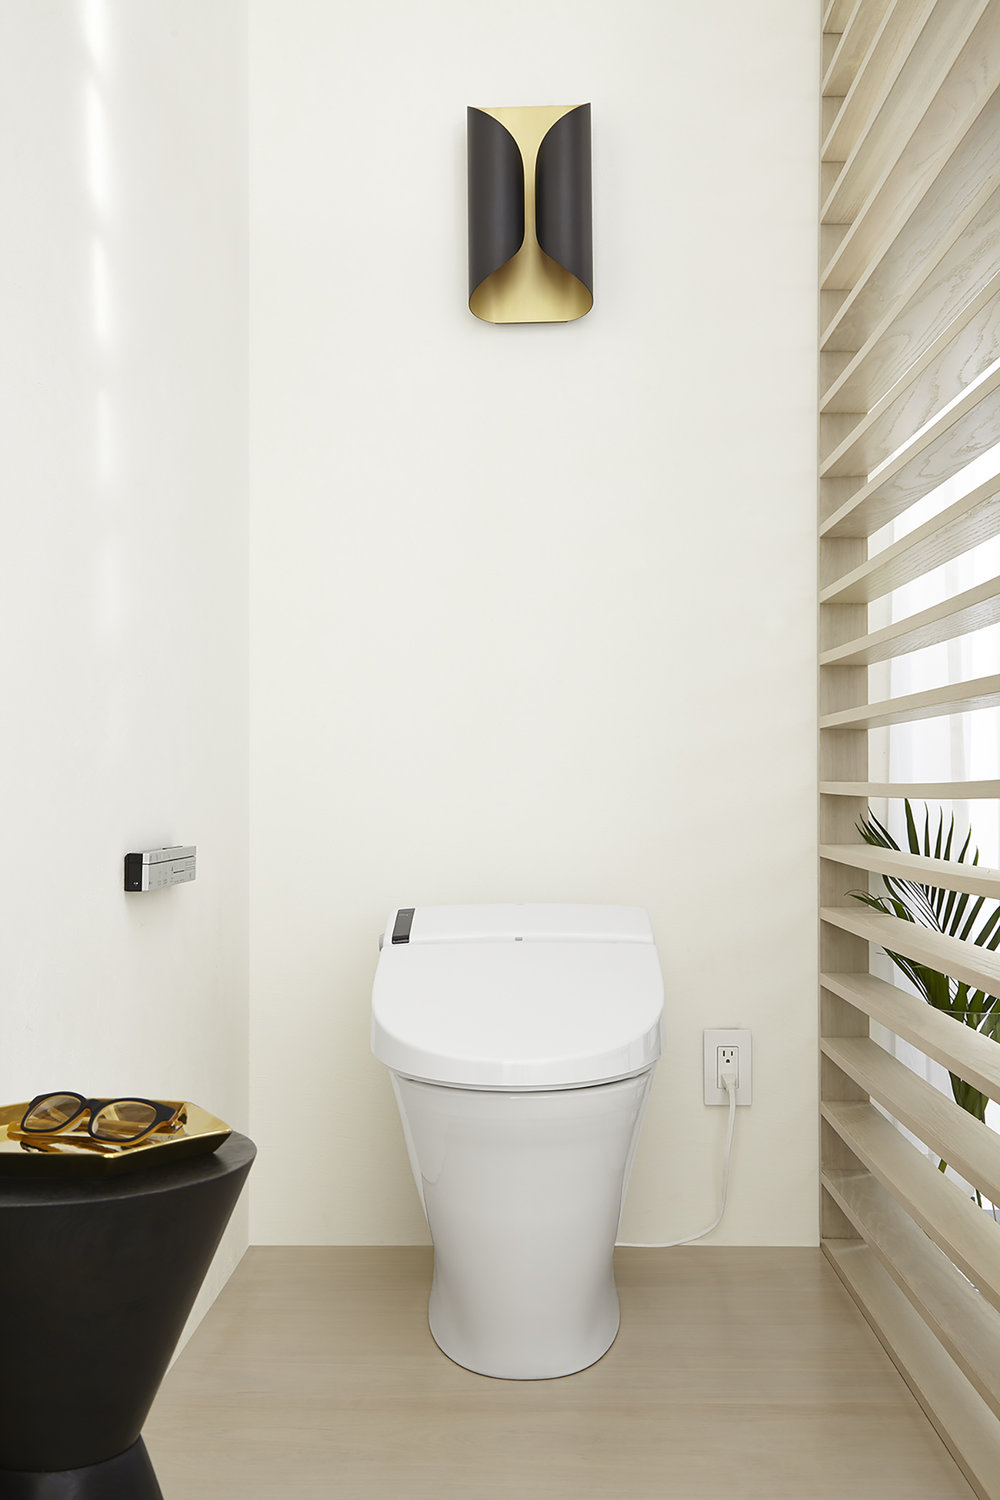 This spectacular piece of technology is a toilet and bidet in one (It also includes an air freshener — not kidding). Meet the  SpaLet AT200 toilet.